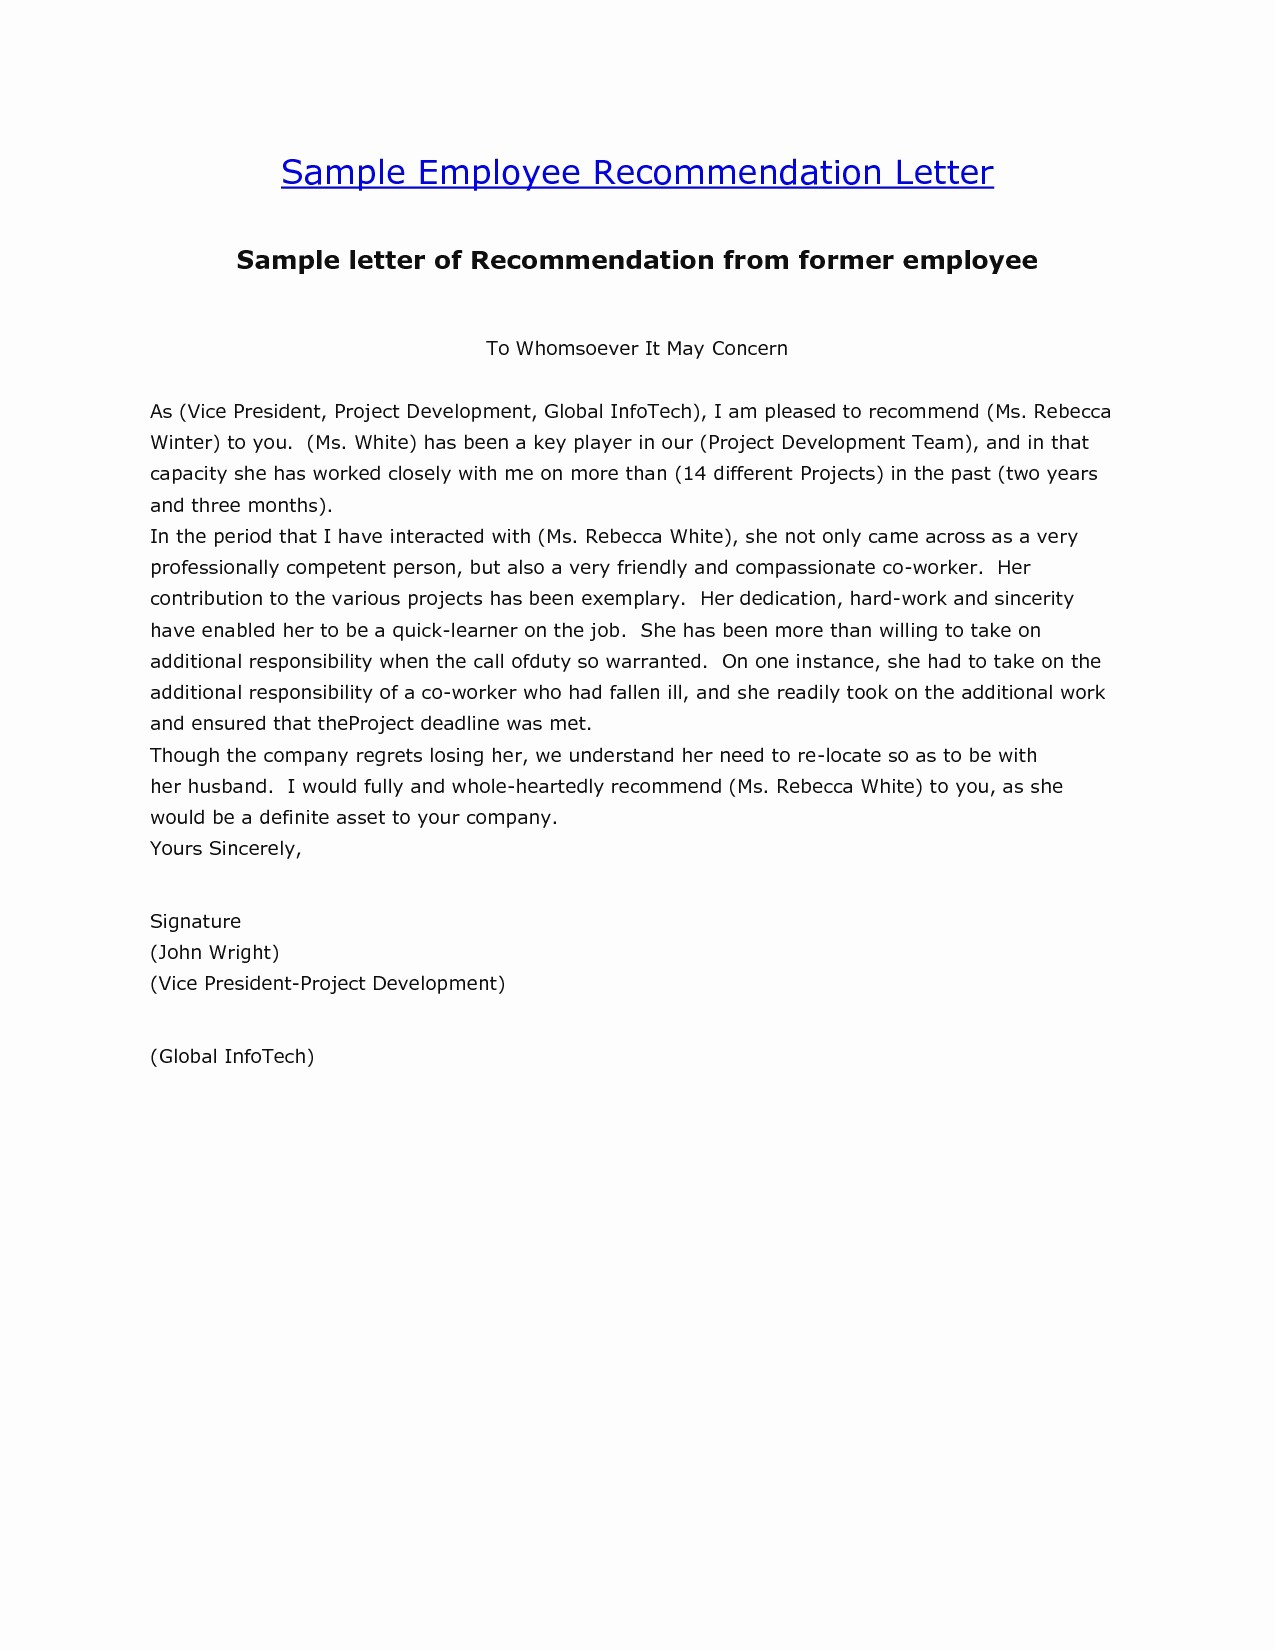 Sample Recommendation Letters for Employee Unique [free] Letter Of Re Mendation Examples Samples